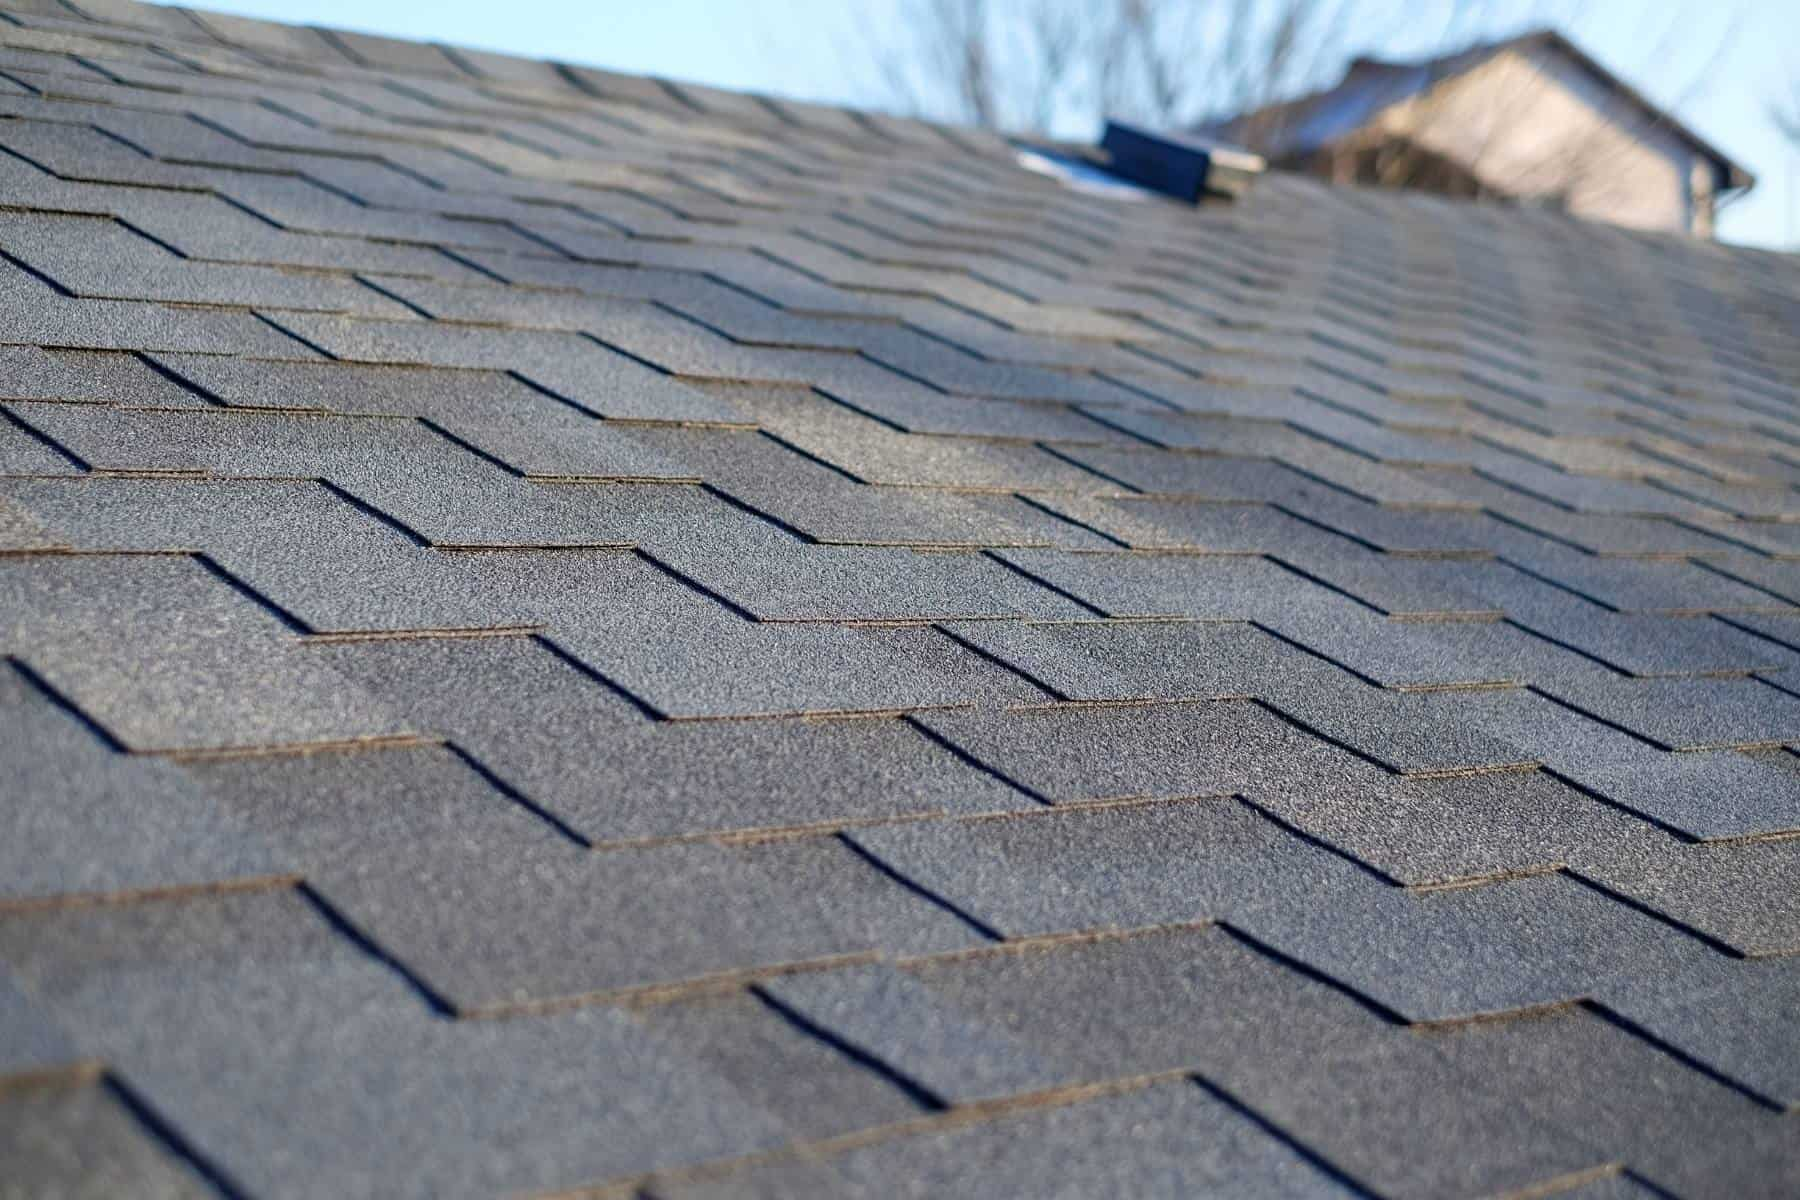 How to get Shingles on A Roof